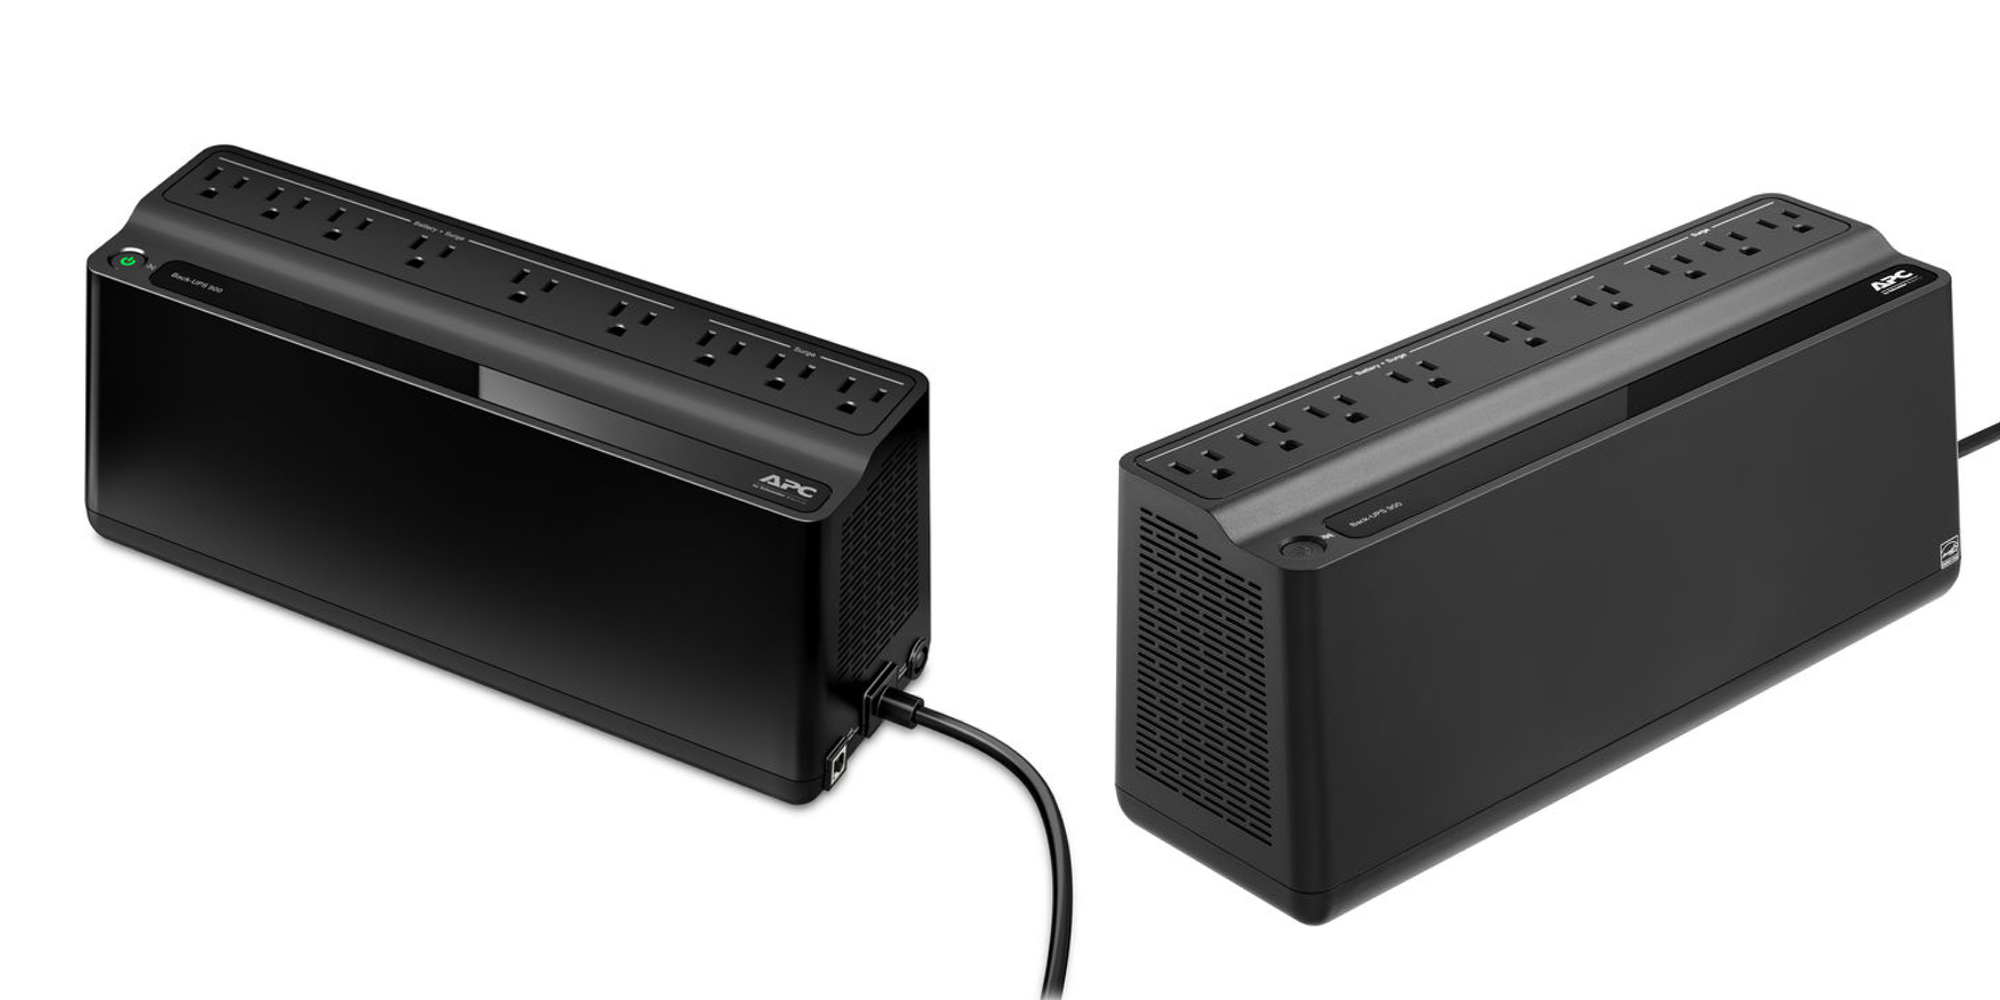 APC's 900VA Nine-Outlet UPS keeps your Wi-Fi running when the power's out: $72 (Reg. $100)